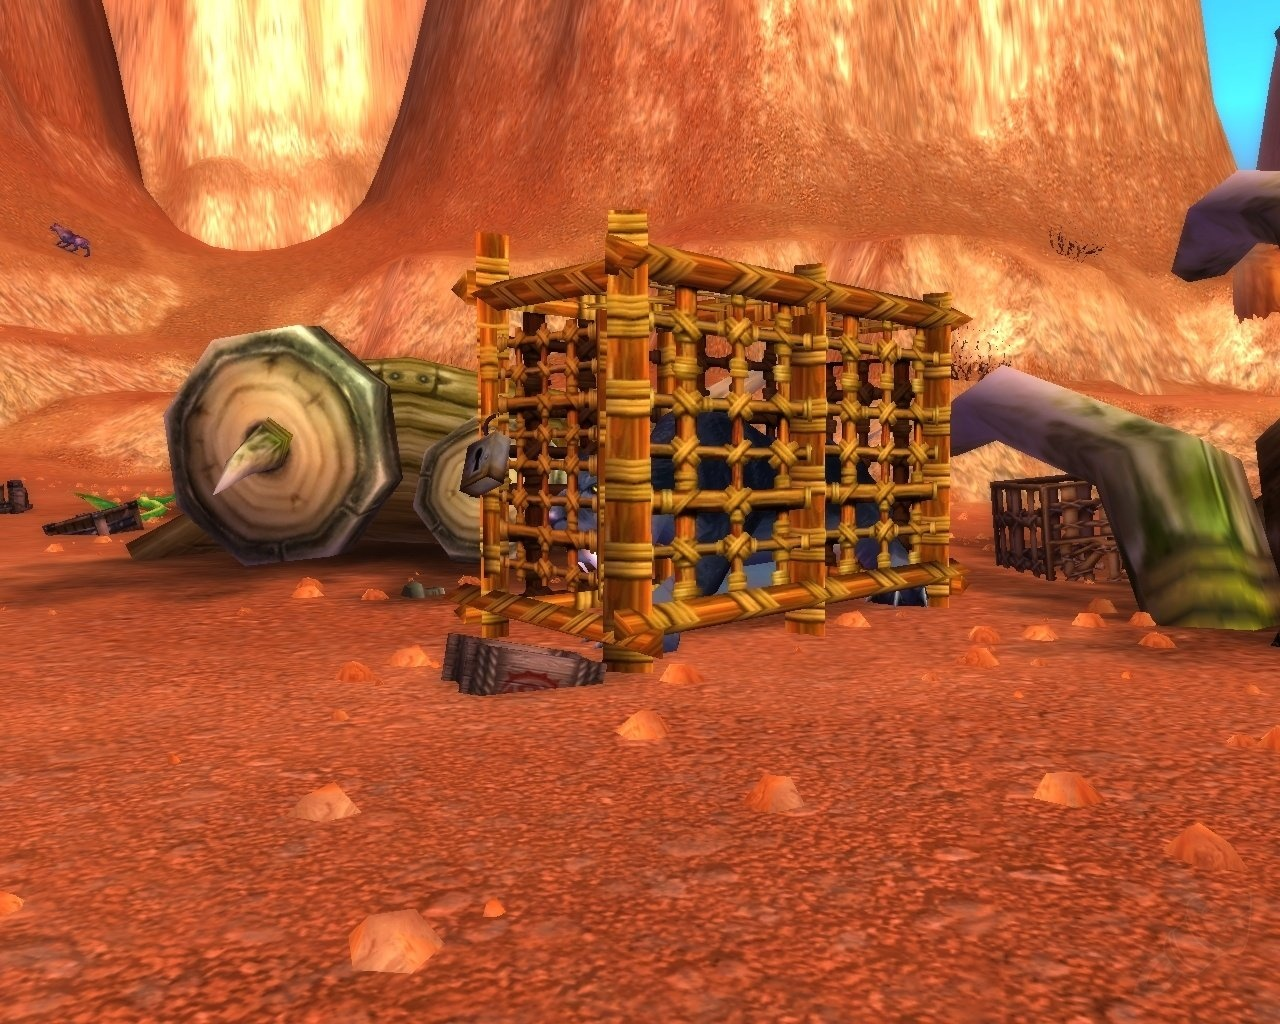 Hypercapacitor Gizmo - Quest - World of Warcraft